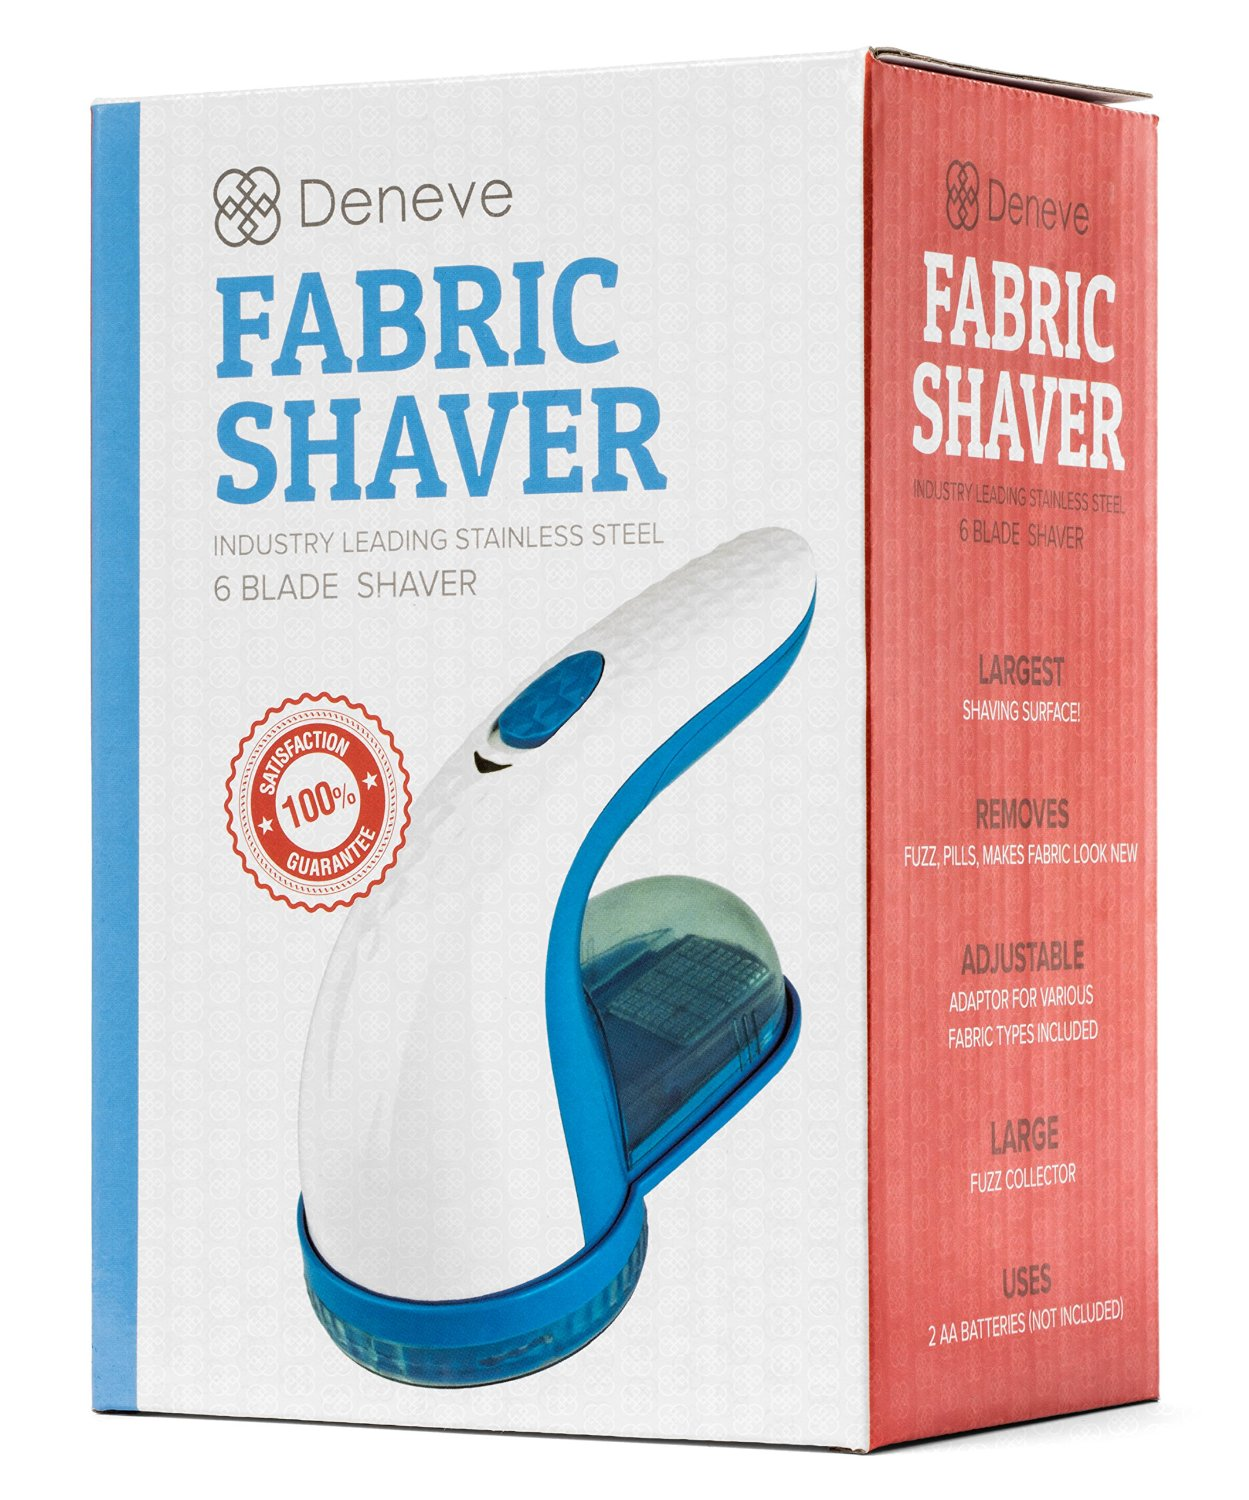 Fabric Shaver By Deneve   Best Electric Large Lint Sweater Buster Fabrics  Fuzz Remover   Perfect Gift For Clothes Pilling Defuzzer Battery Operated  With ...